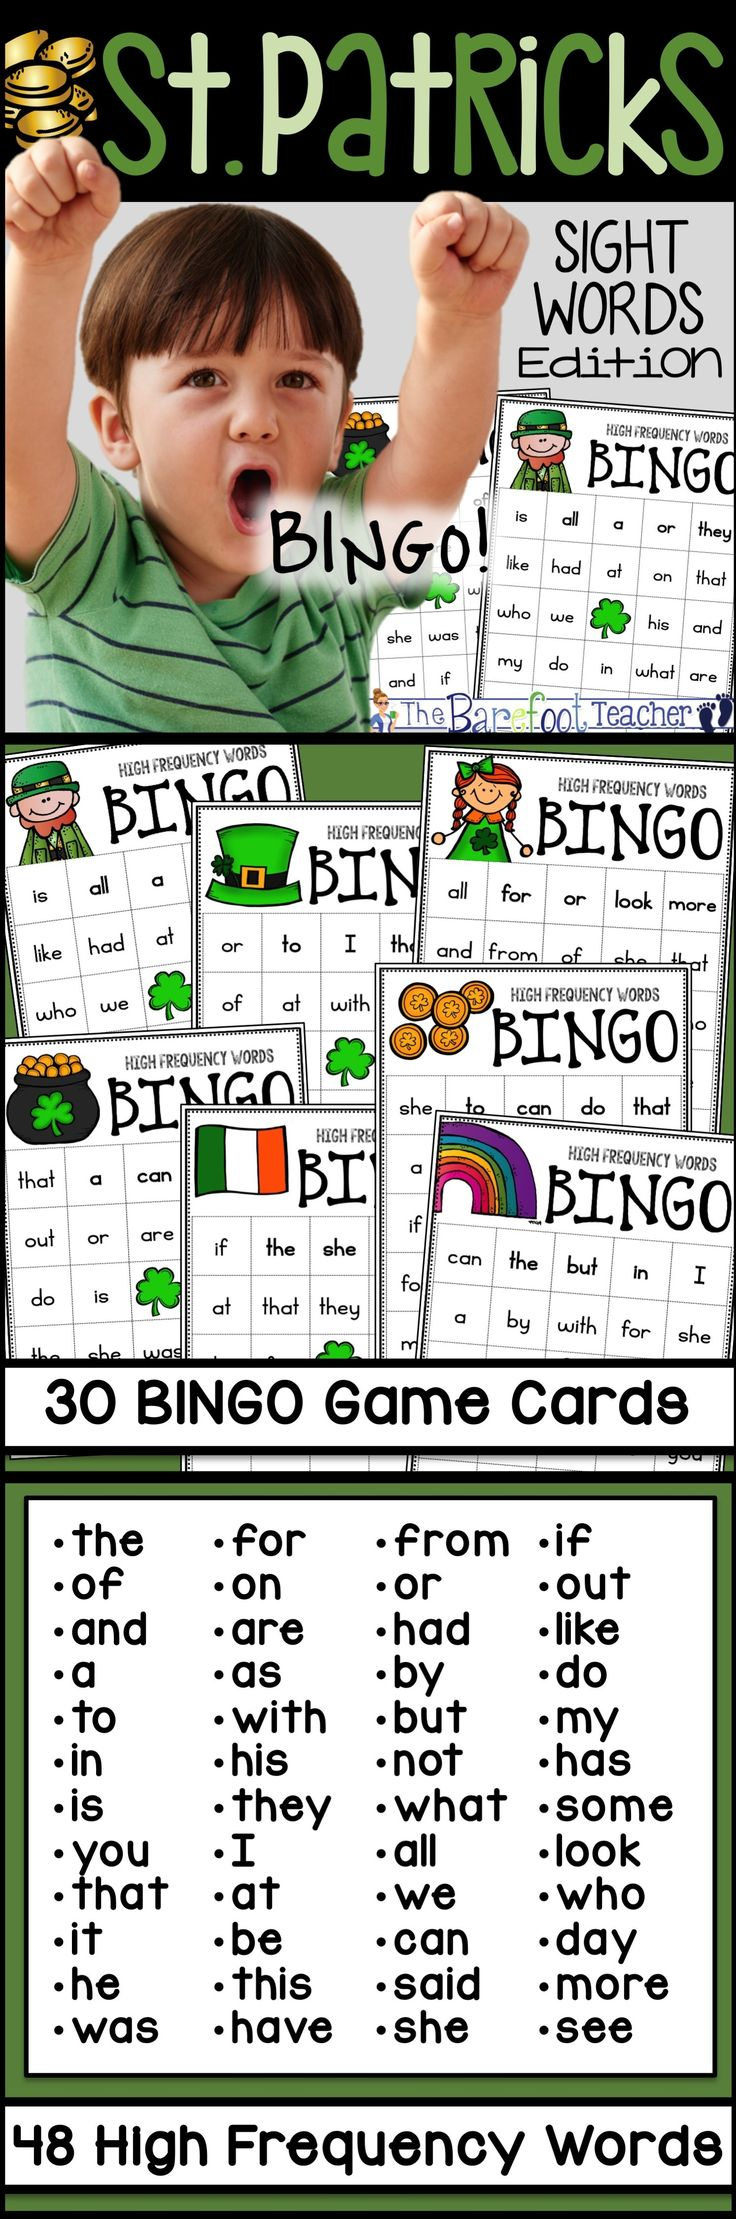 """St. Patricks Day Sight Words Game: Everyone loves playing BINGO! There's nothing more thrilling than placing that final chip on your card and yelling """"BINGO!""""   This St. Patricks Day themed BINGO includes 30 different game cards, each with its own St. Patricks Day themed picture at the top. The shamrock picture in the middle serves as a FREE spot.   The 48 large sized calling cards make it easy for students to read as you call each word. Reinforcing sight words even more!"""